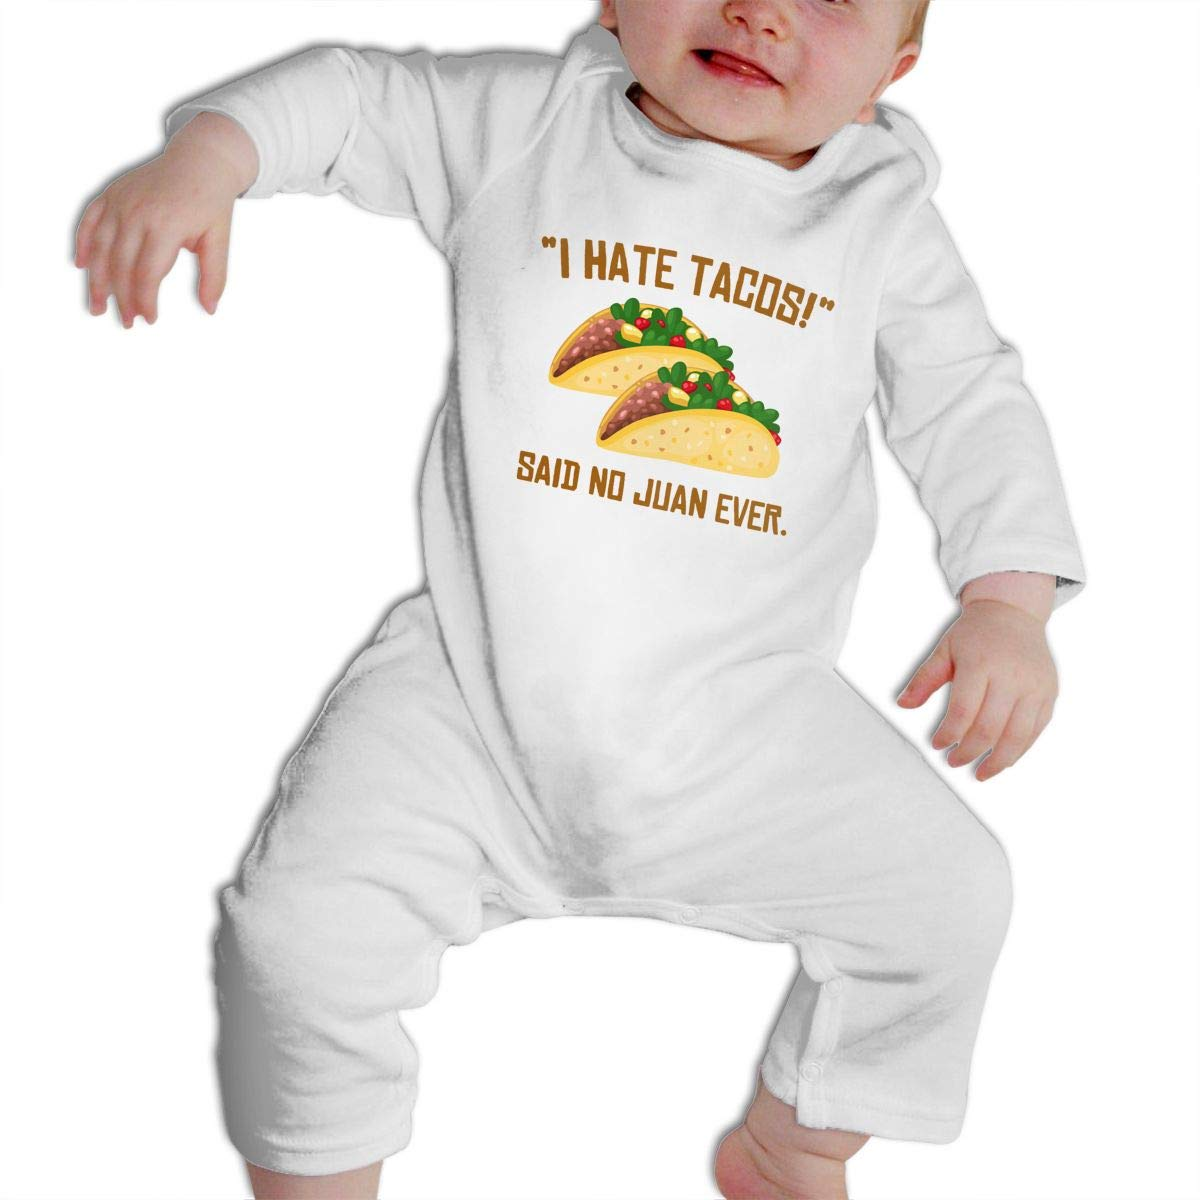 Cami I HATE TACOS Said No Juan Ever Baby Boys Girls Long Sleeve Onesies Infant Bodysuit Baby For 6-24months